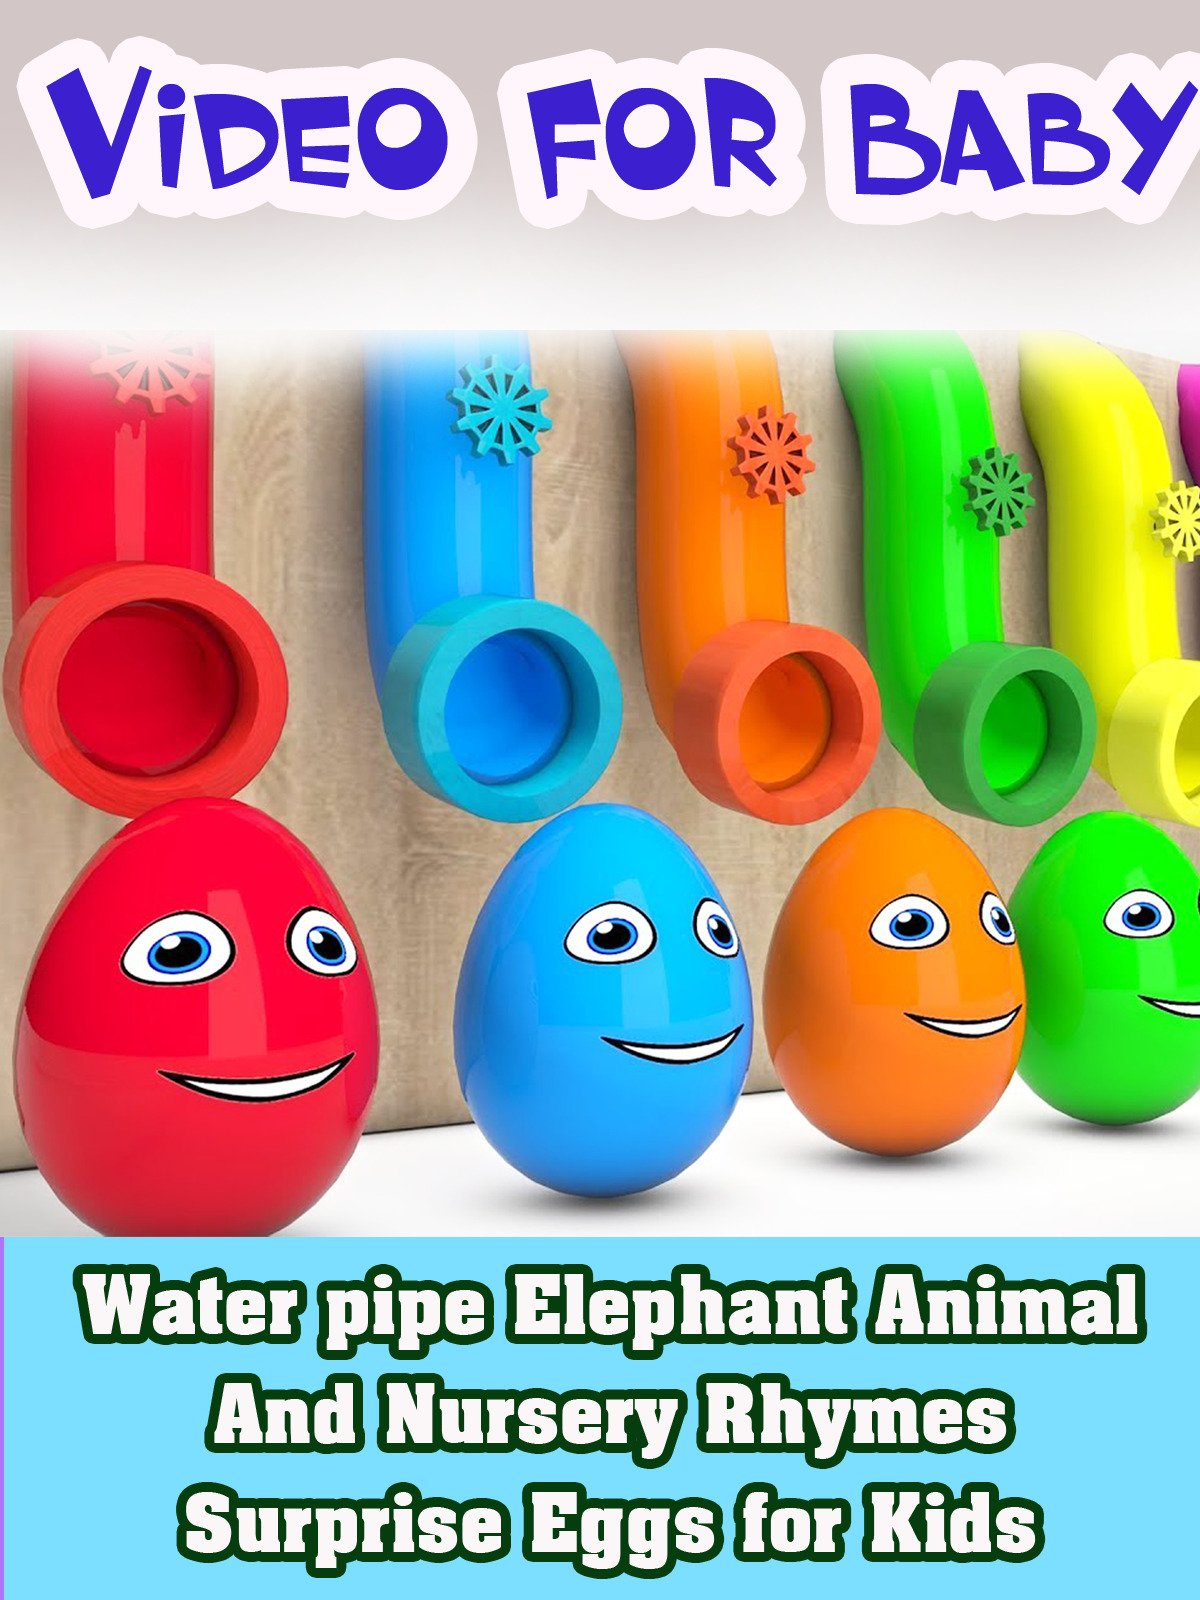 Water pipe Elephant Animal And Nursery Rhymes Surprise Eggs for Kids